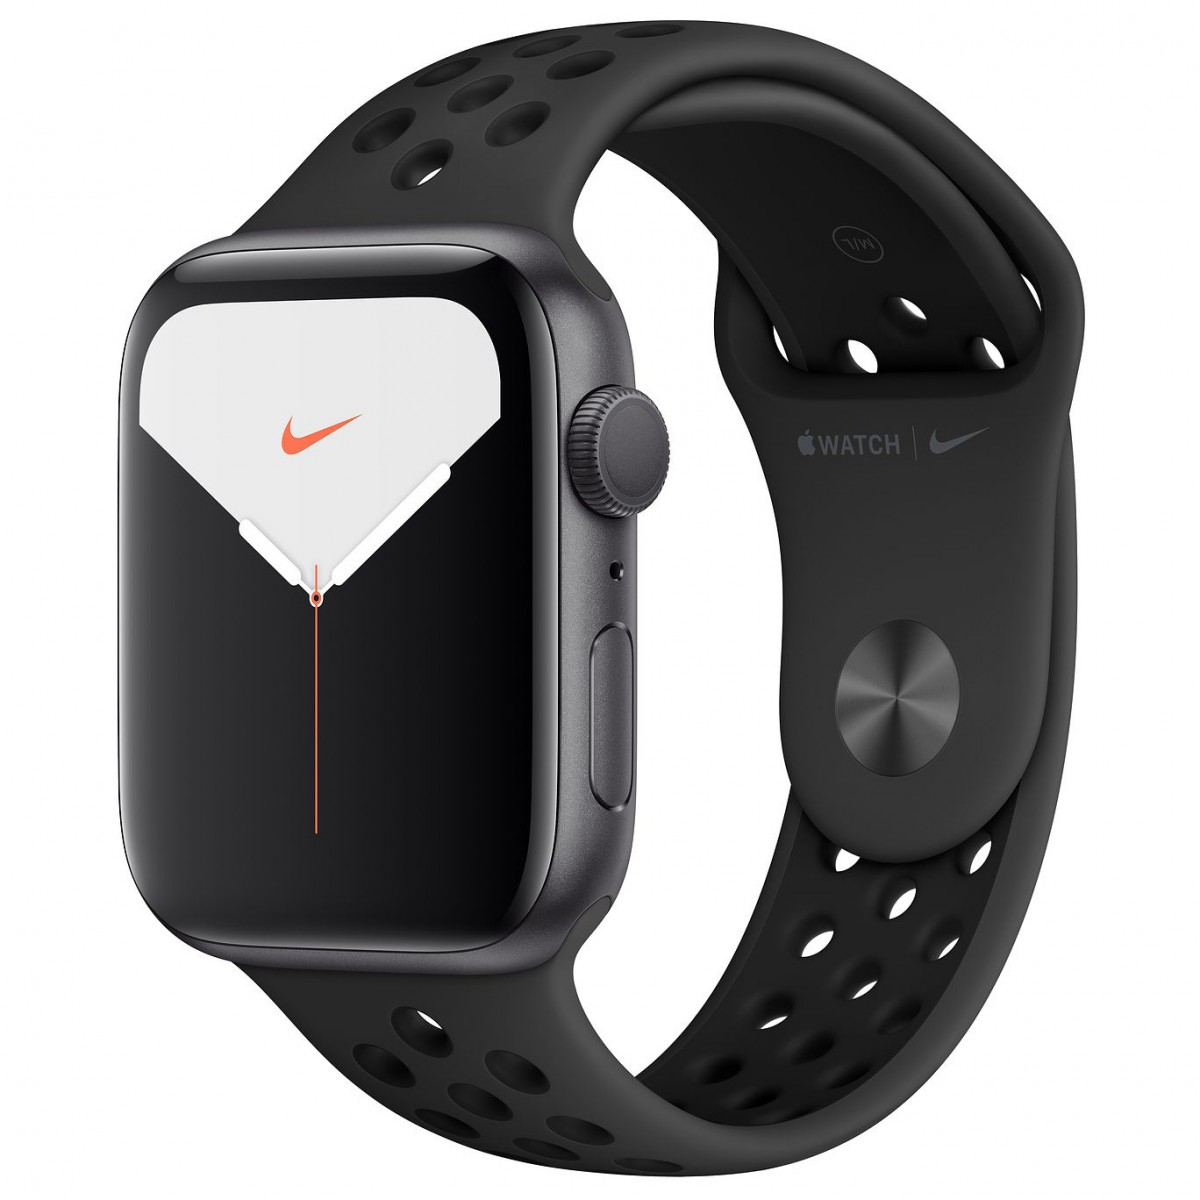 Apple Watch Series 5 Nike 44mm GPS Space Gray Aluminum Case with Anthracite/Black Nike Sport Band